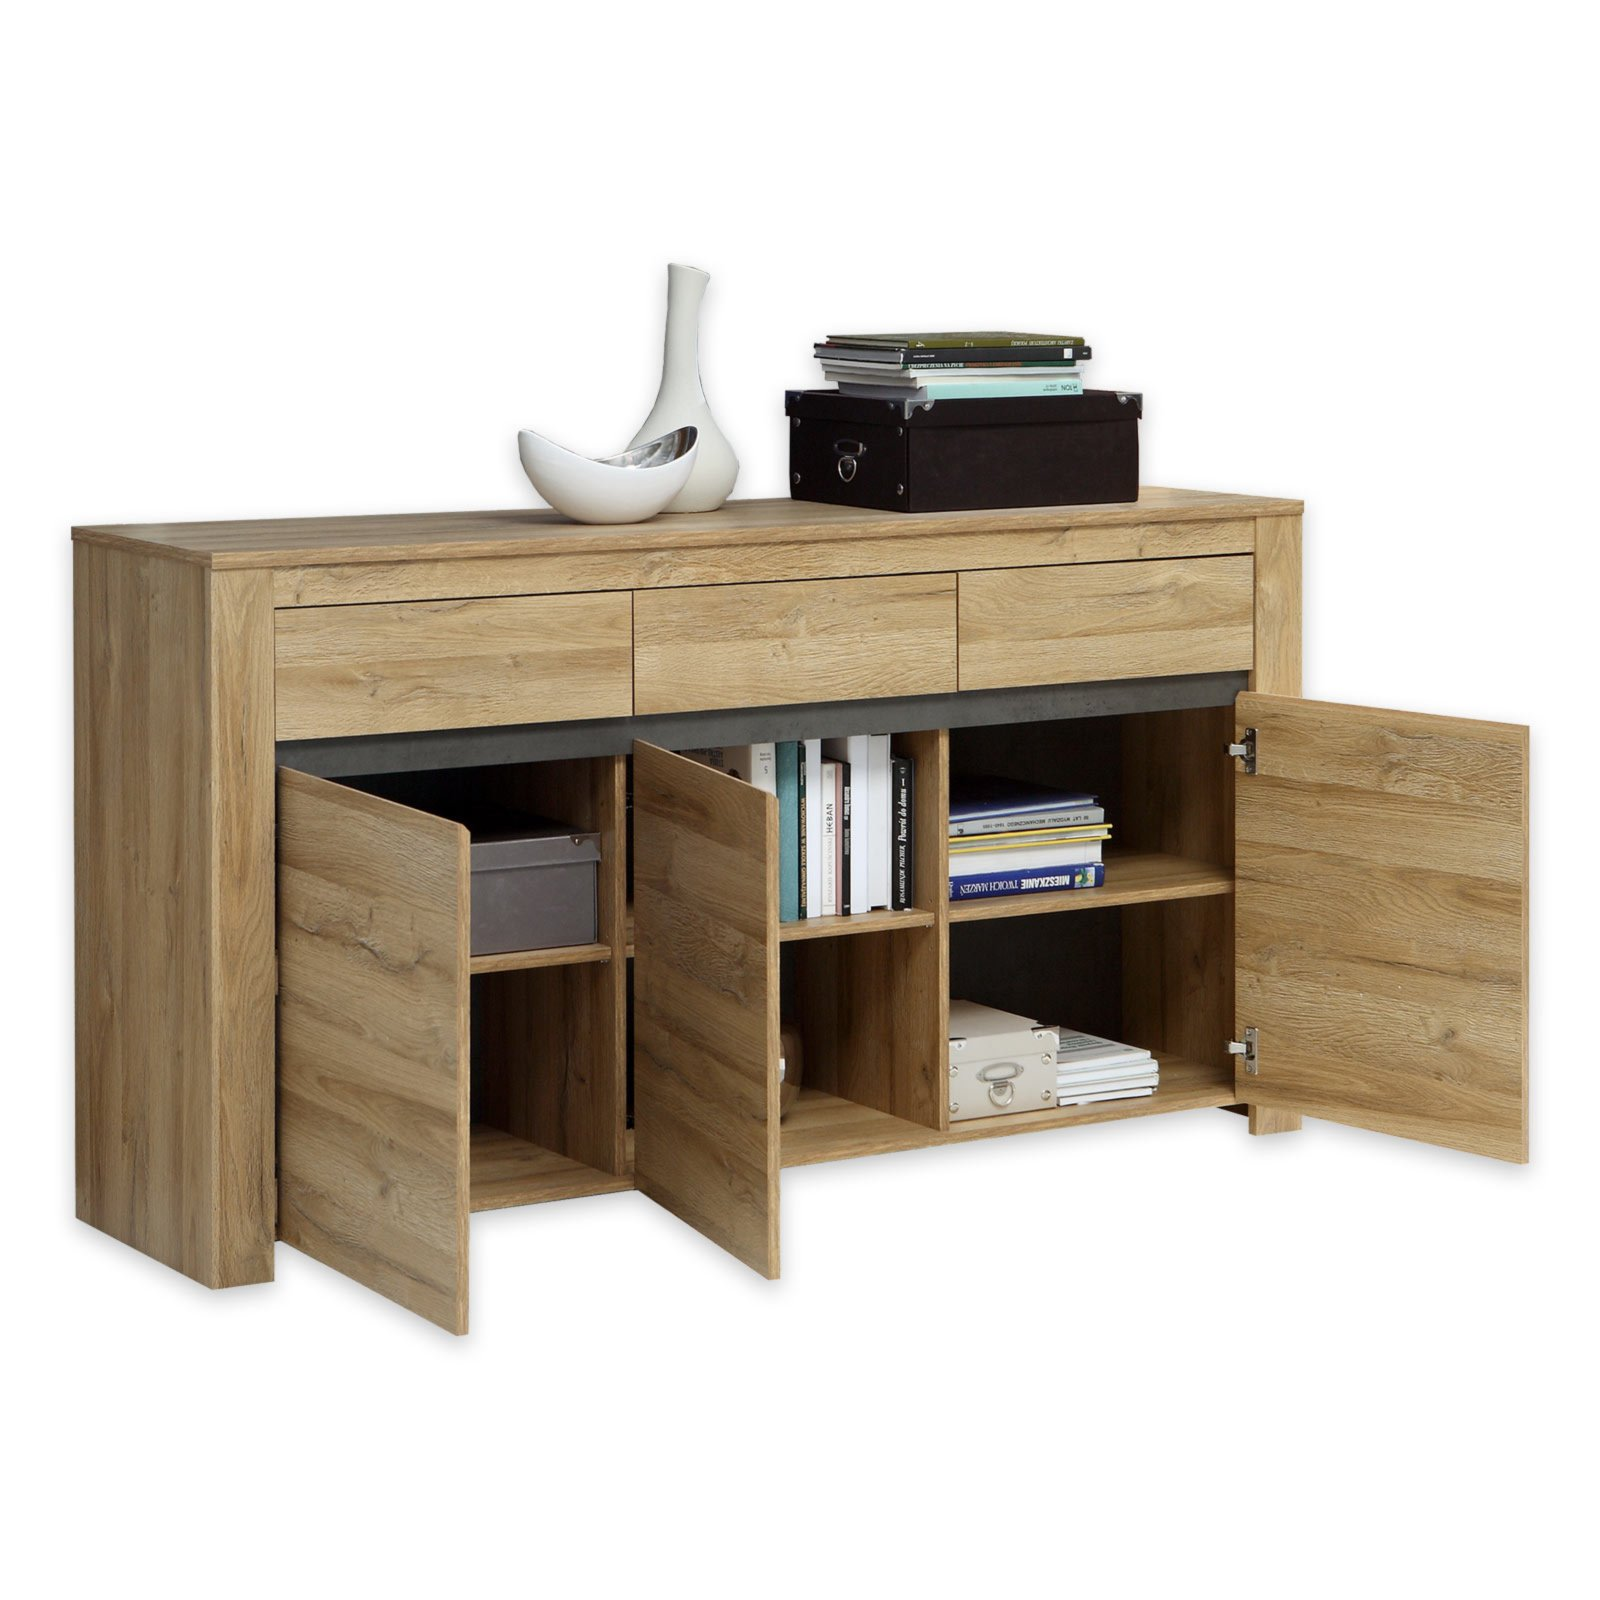 Cheers Sessel Sideboard Cheers Alteiche Betonoptik 166 Cm Breit Ebay